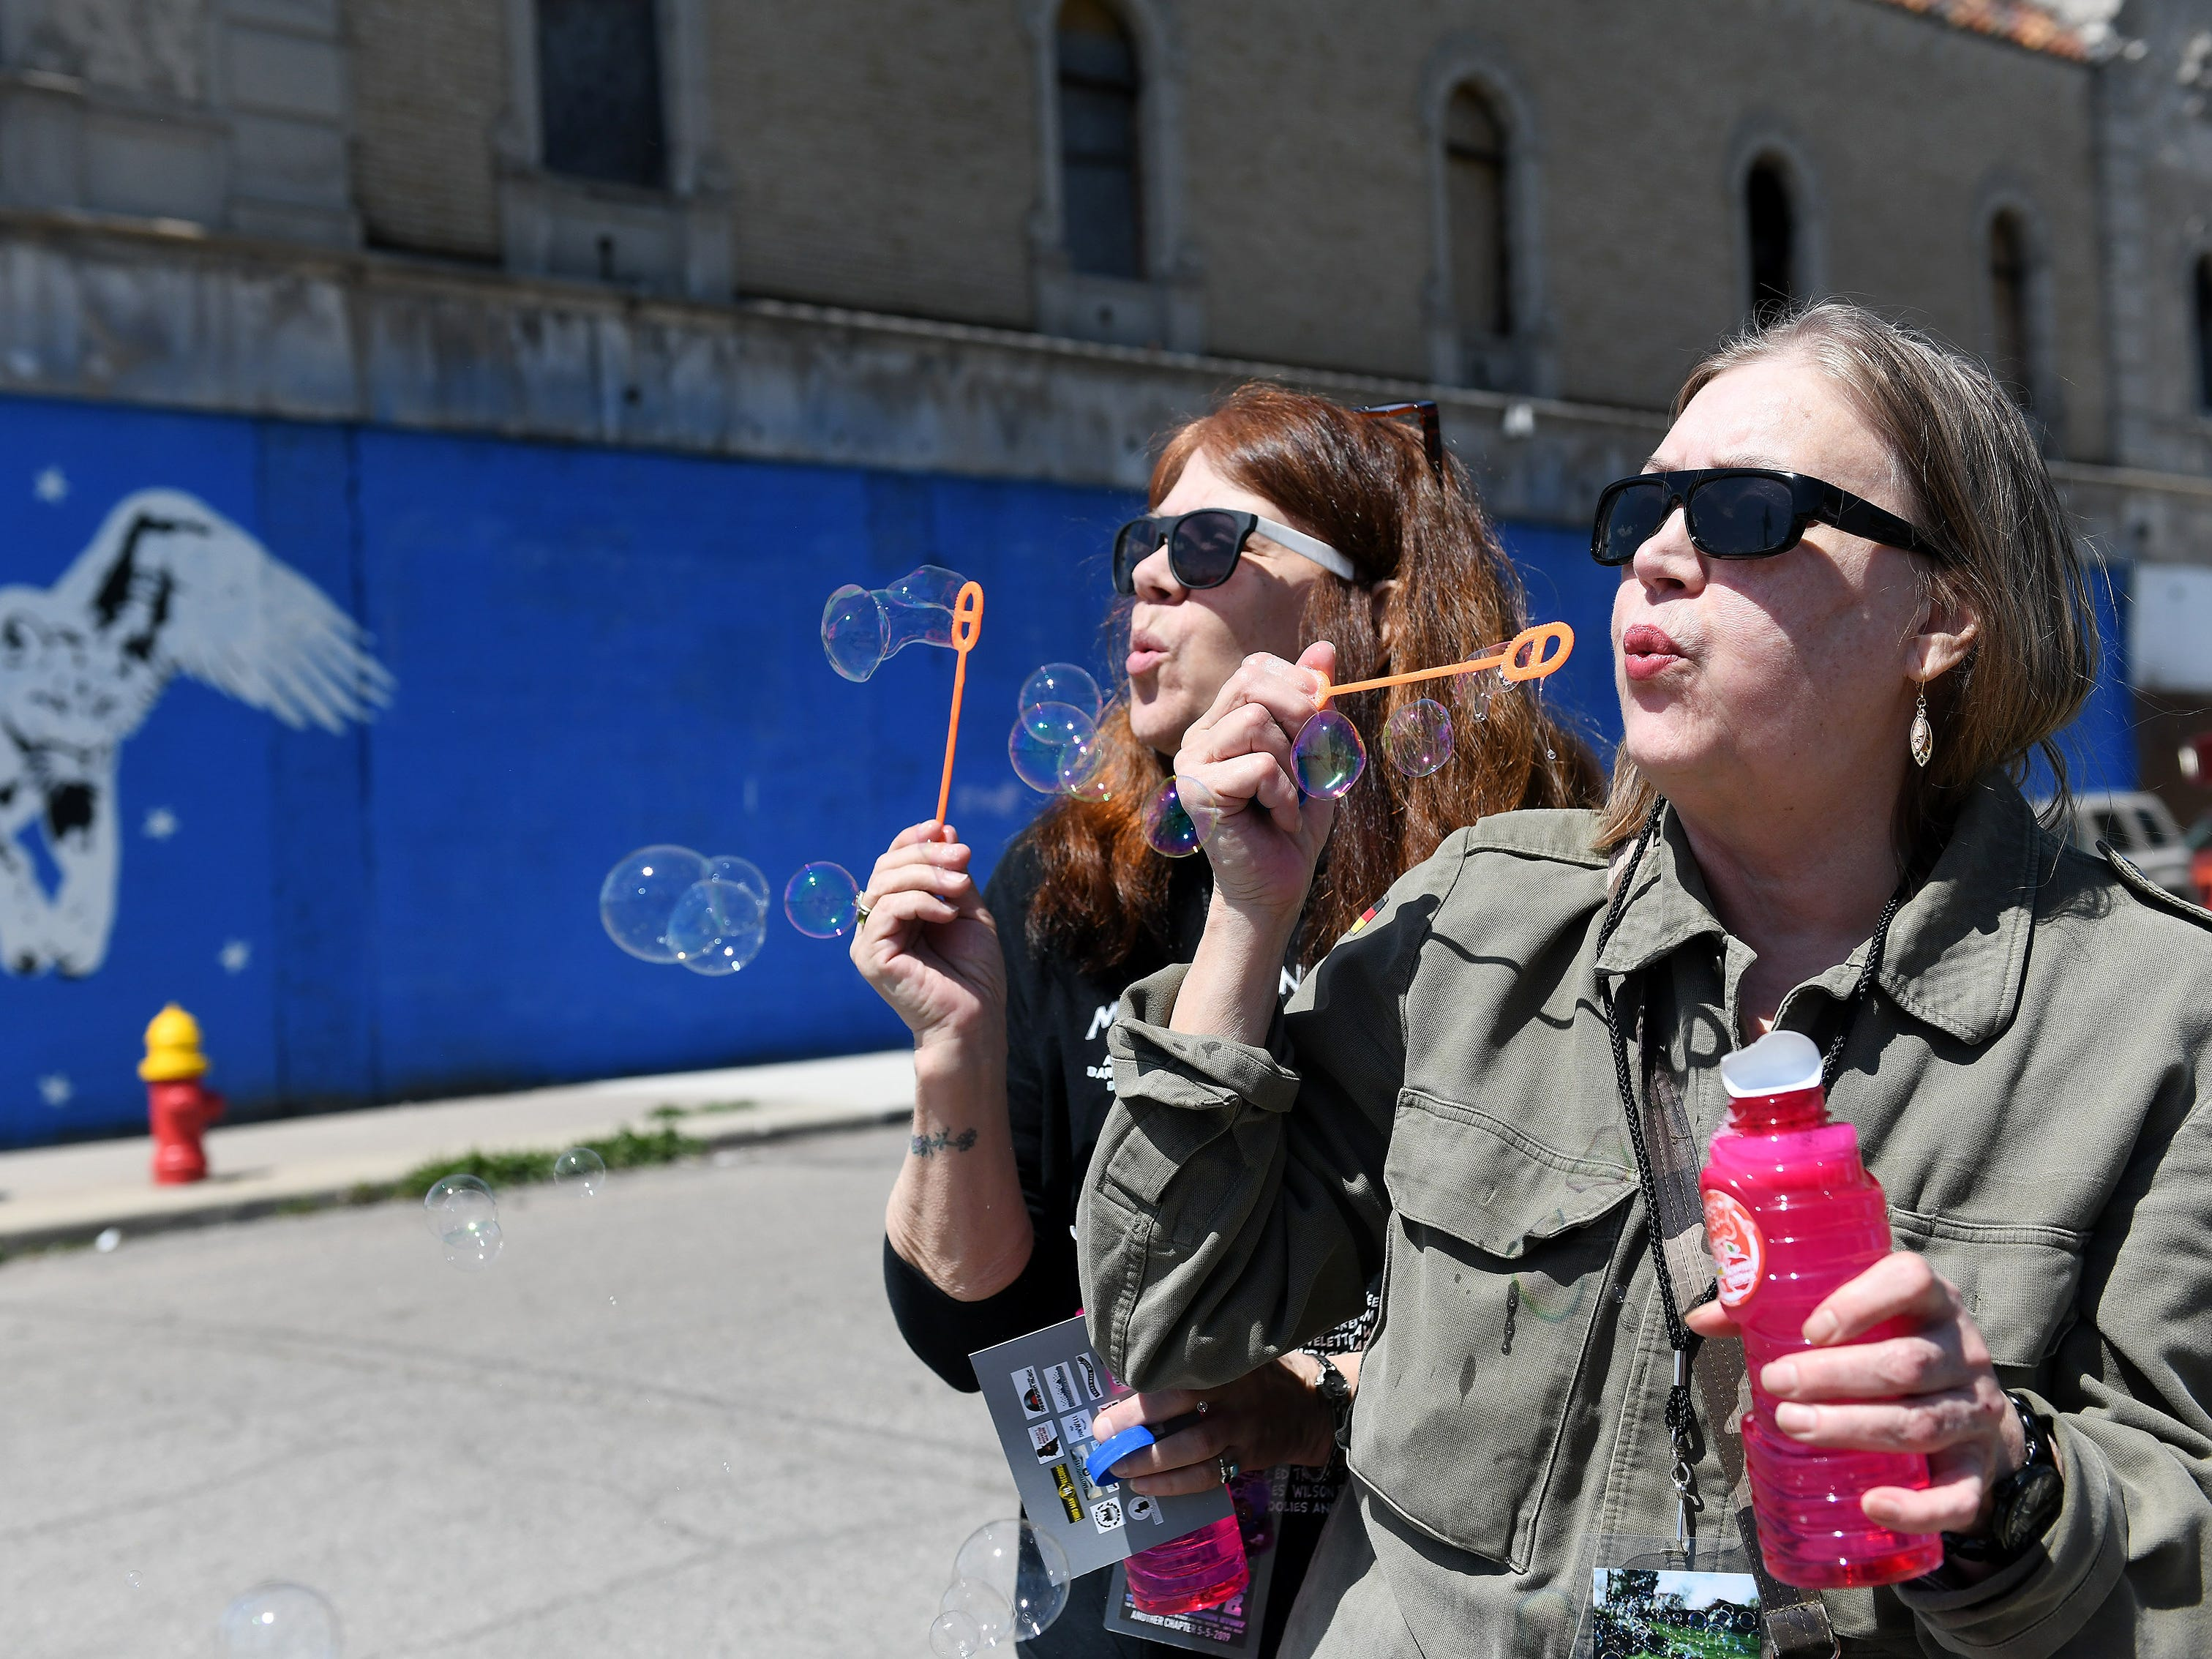 From left, Sheryl Gatt and Terry Seisser both of Novi blow bubbles as people gather to celebrate the life of Russ Gibb outside the Grande Ballroom on Grand River Boulevard.